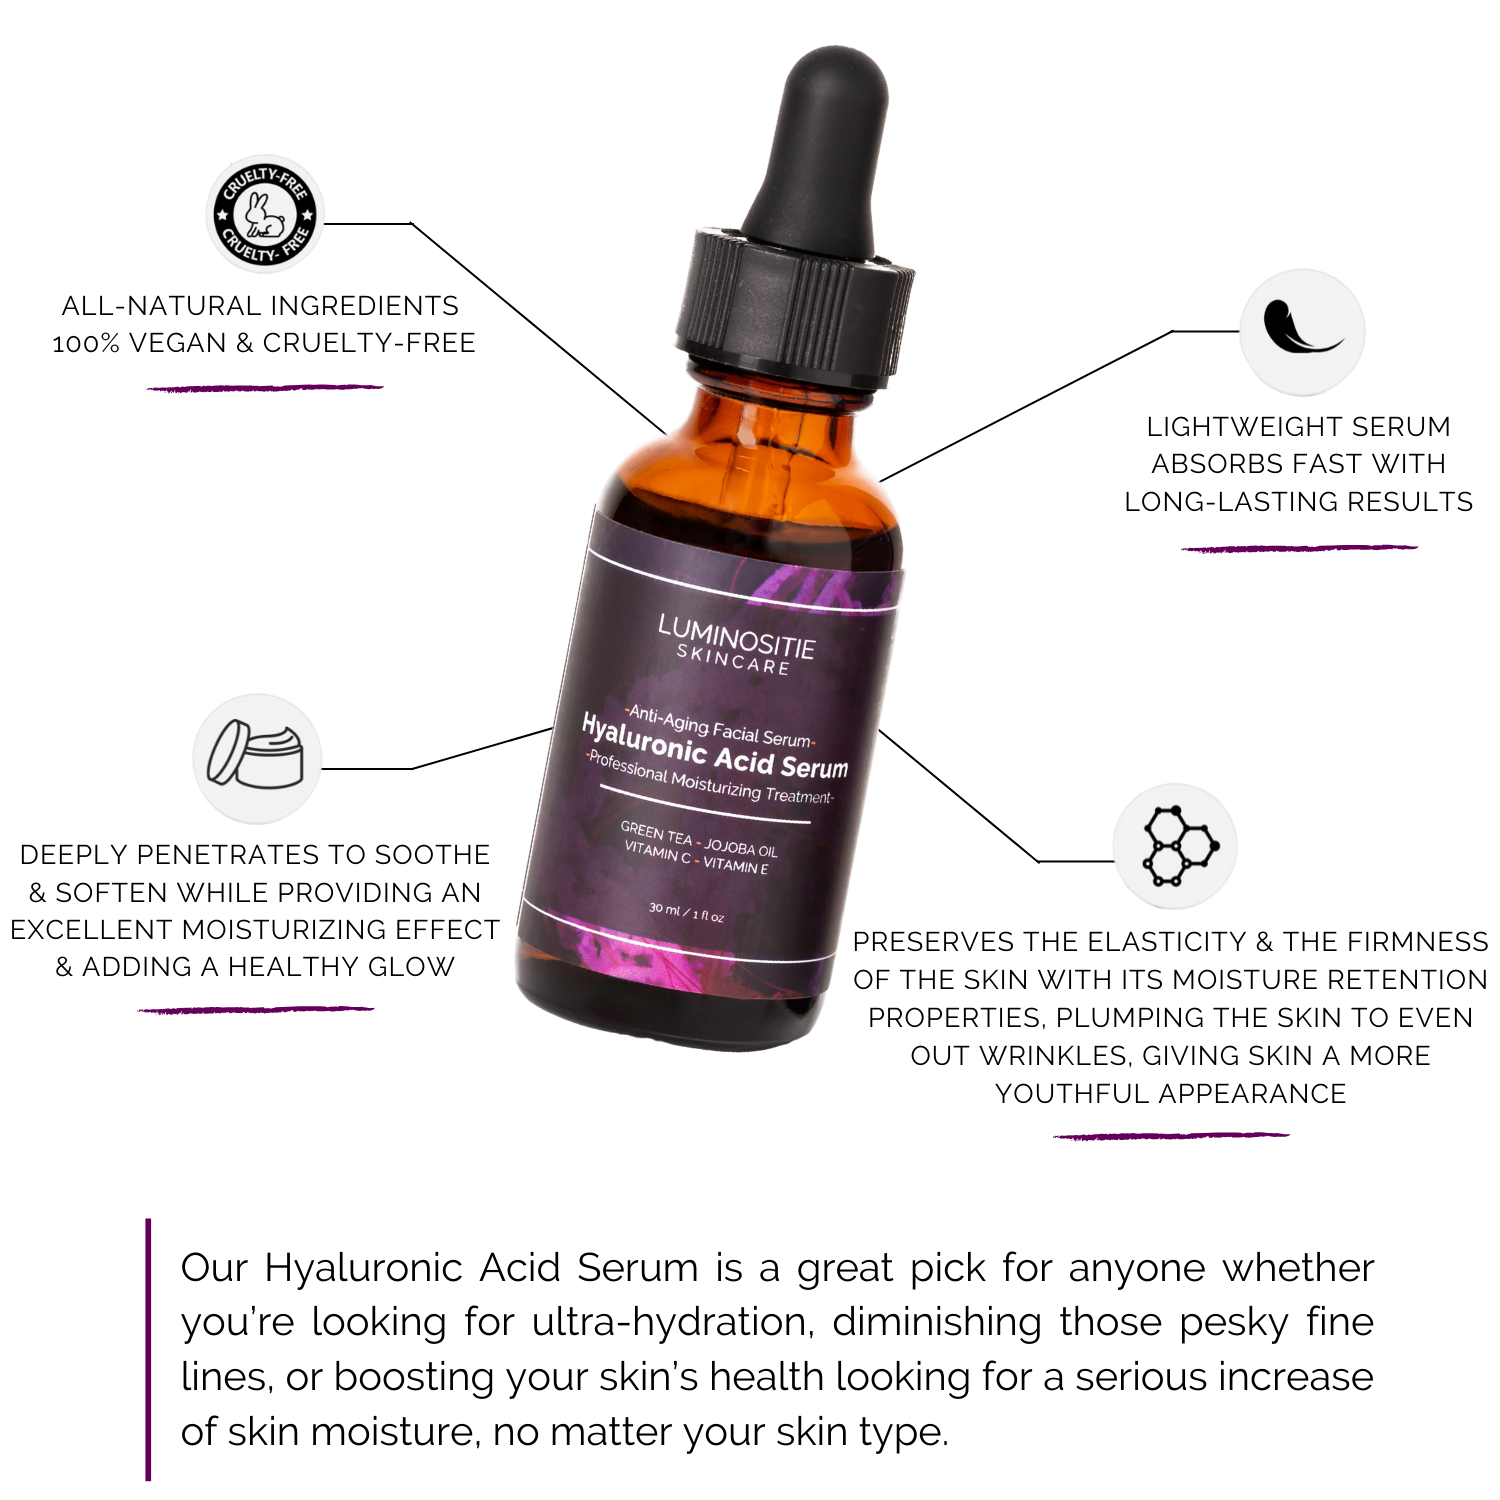 Hyaluronic Acid Serum - Luminositie